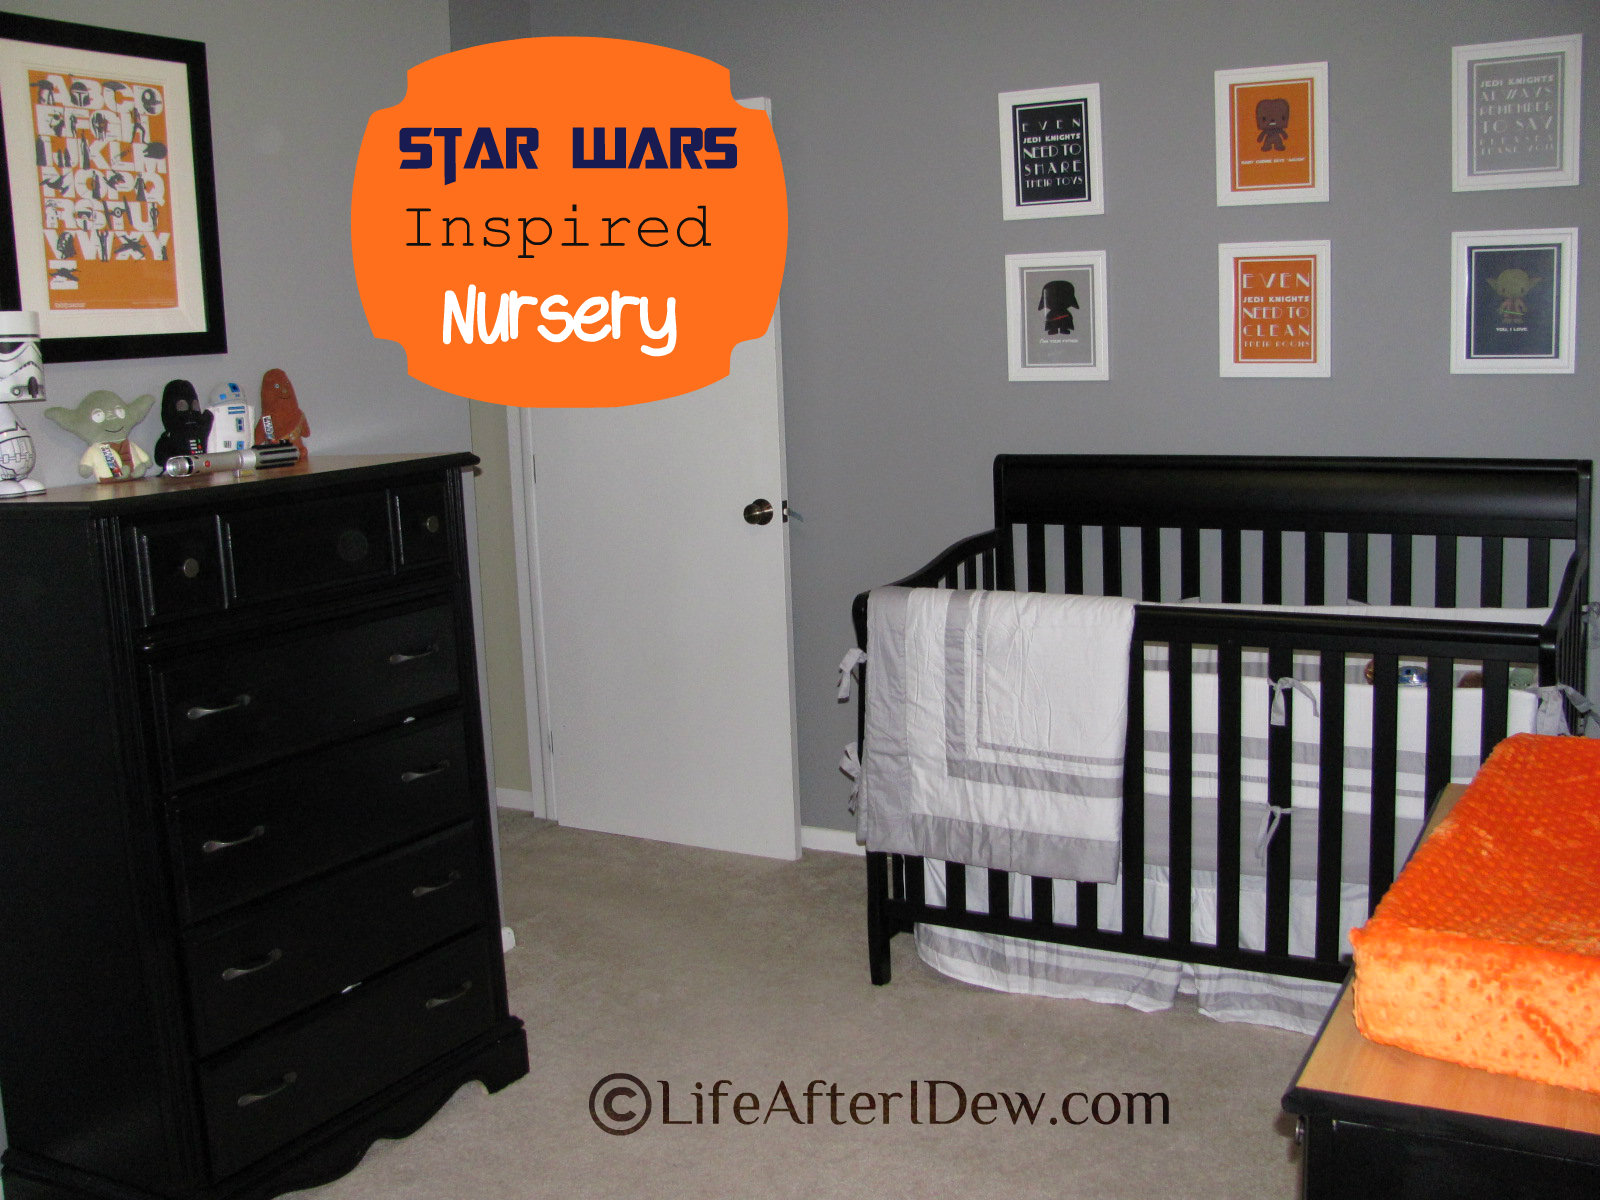 Star Wars Inspired Nursery Reveal